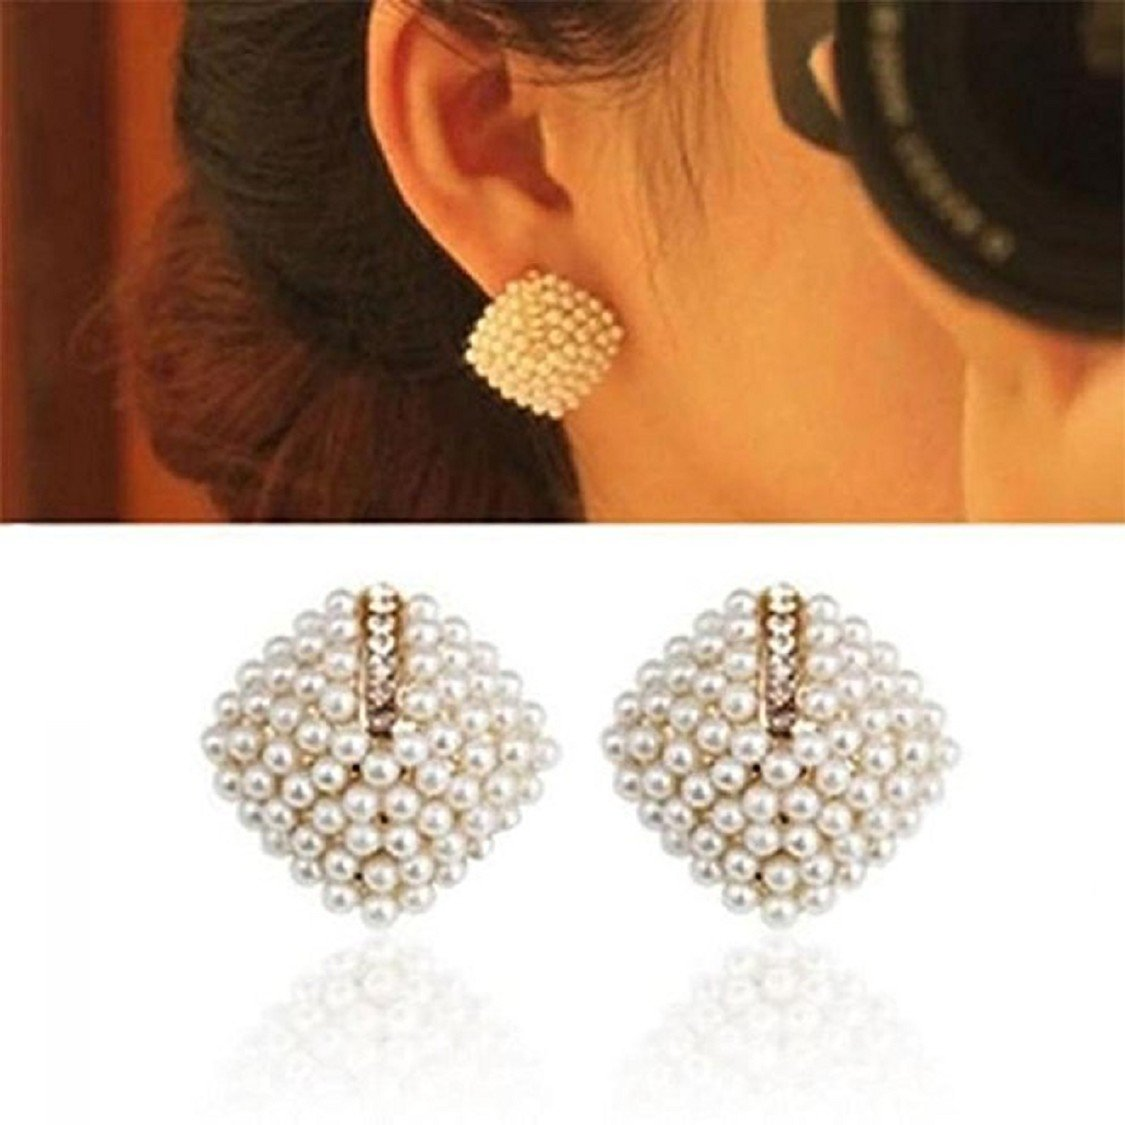 Ikevan 2017 New Fashion Women's 1 Pair Fashion OL Style Women Stud Earrings Pearl Rhombus Crystal Rhinestone